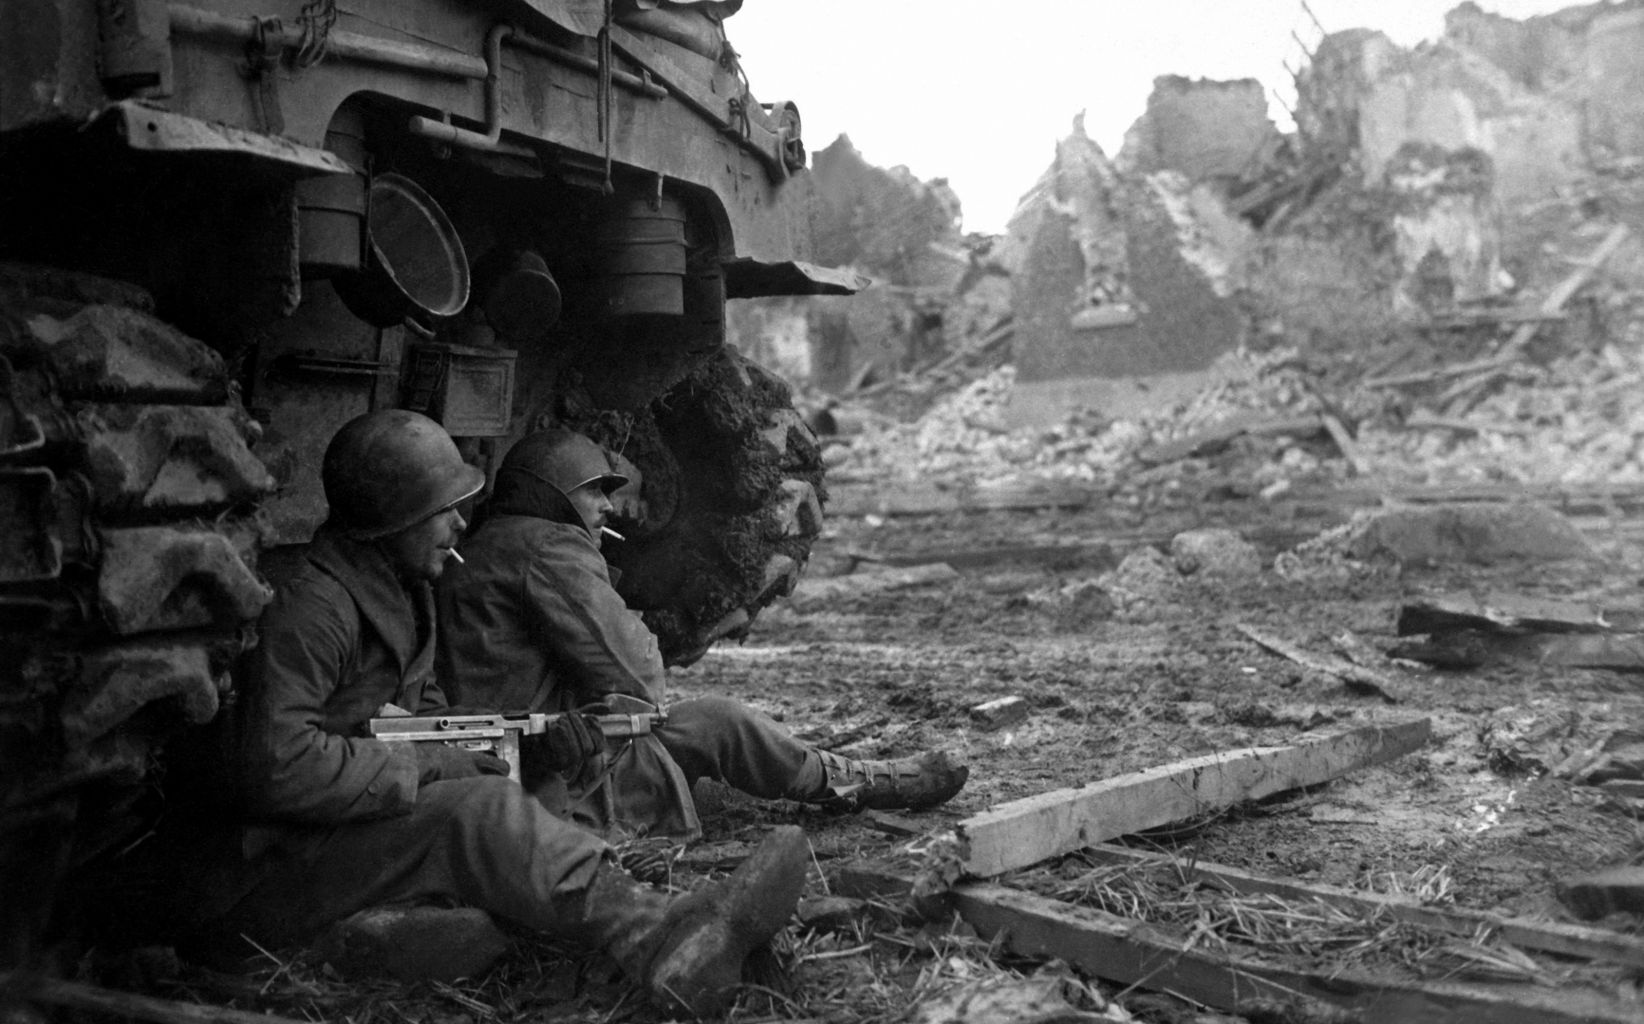 gis-of-c-company-36th-air-9th-infantry-division-at-geich-germany-11-december-1944.jpg